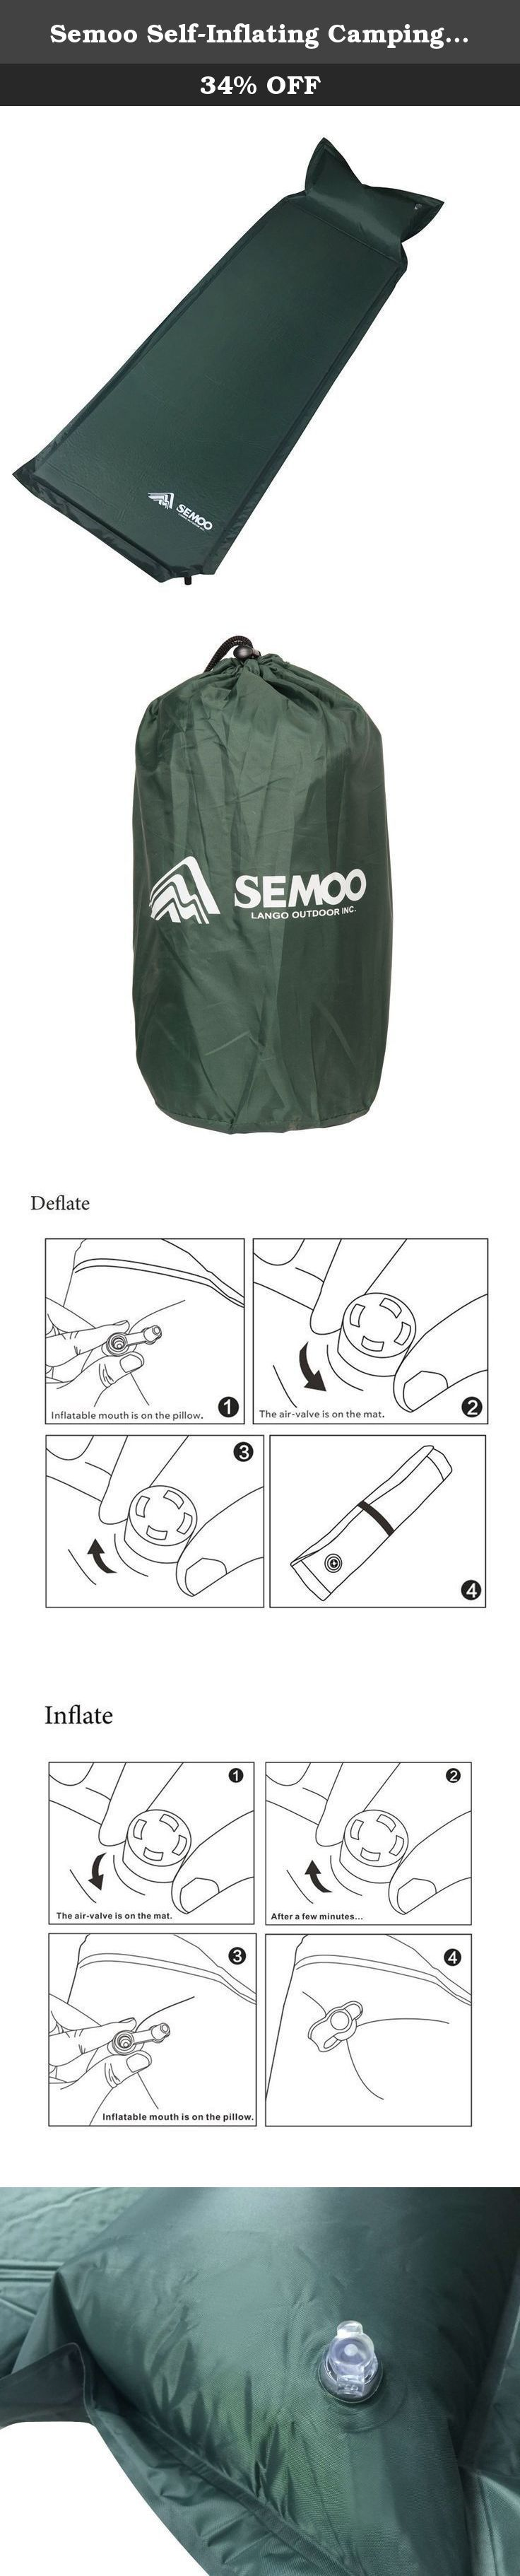 Semoo Self-Inflating Camping Sleeping Mat/pad, Quick Flow Valve, Water Repellent Coating, with Attached Inflatable Pillow,190T Polyester. The Semoo Self-Inflating Sleeping Mat/Pad is a perfect choice for camping and travel. Equipped with a special waterproof polyester taffeta outer lining, and filled with a high-resilience sponge and air, this mat will provide ample comfort. A high-quality ABS quick flow valve makes the mat super easy to self-inflate and deflate, and convenient to use…